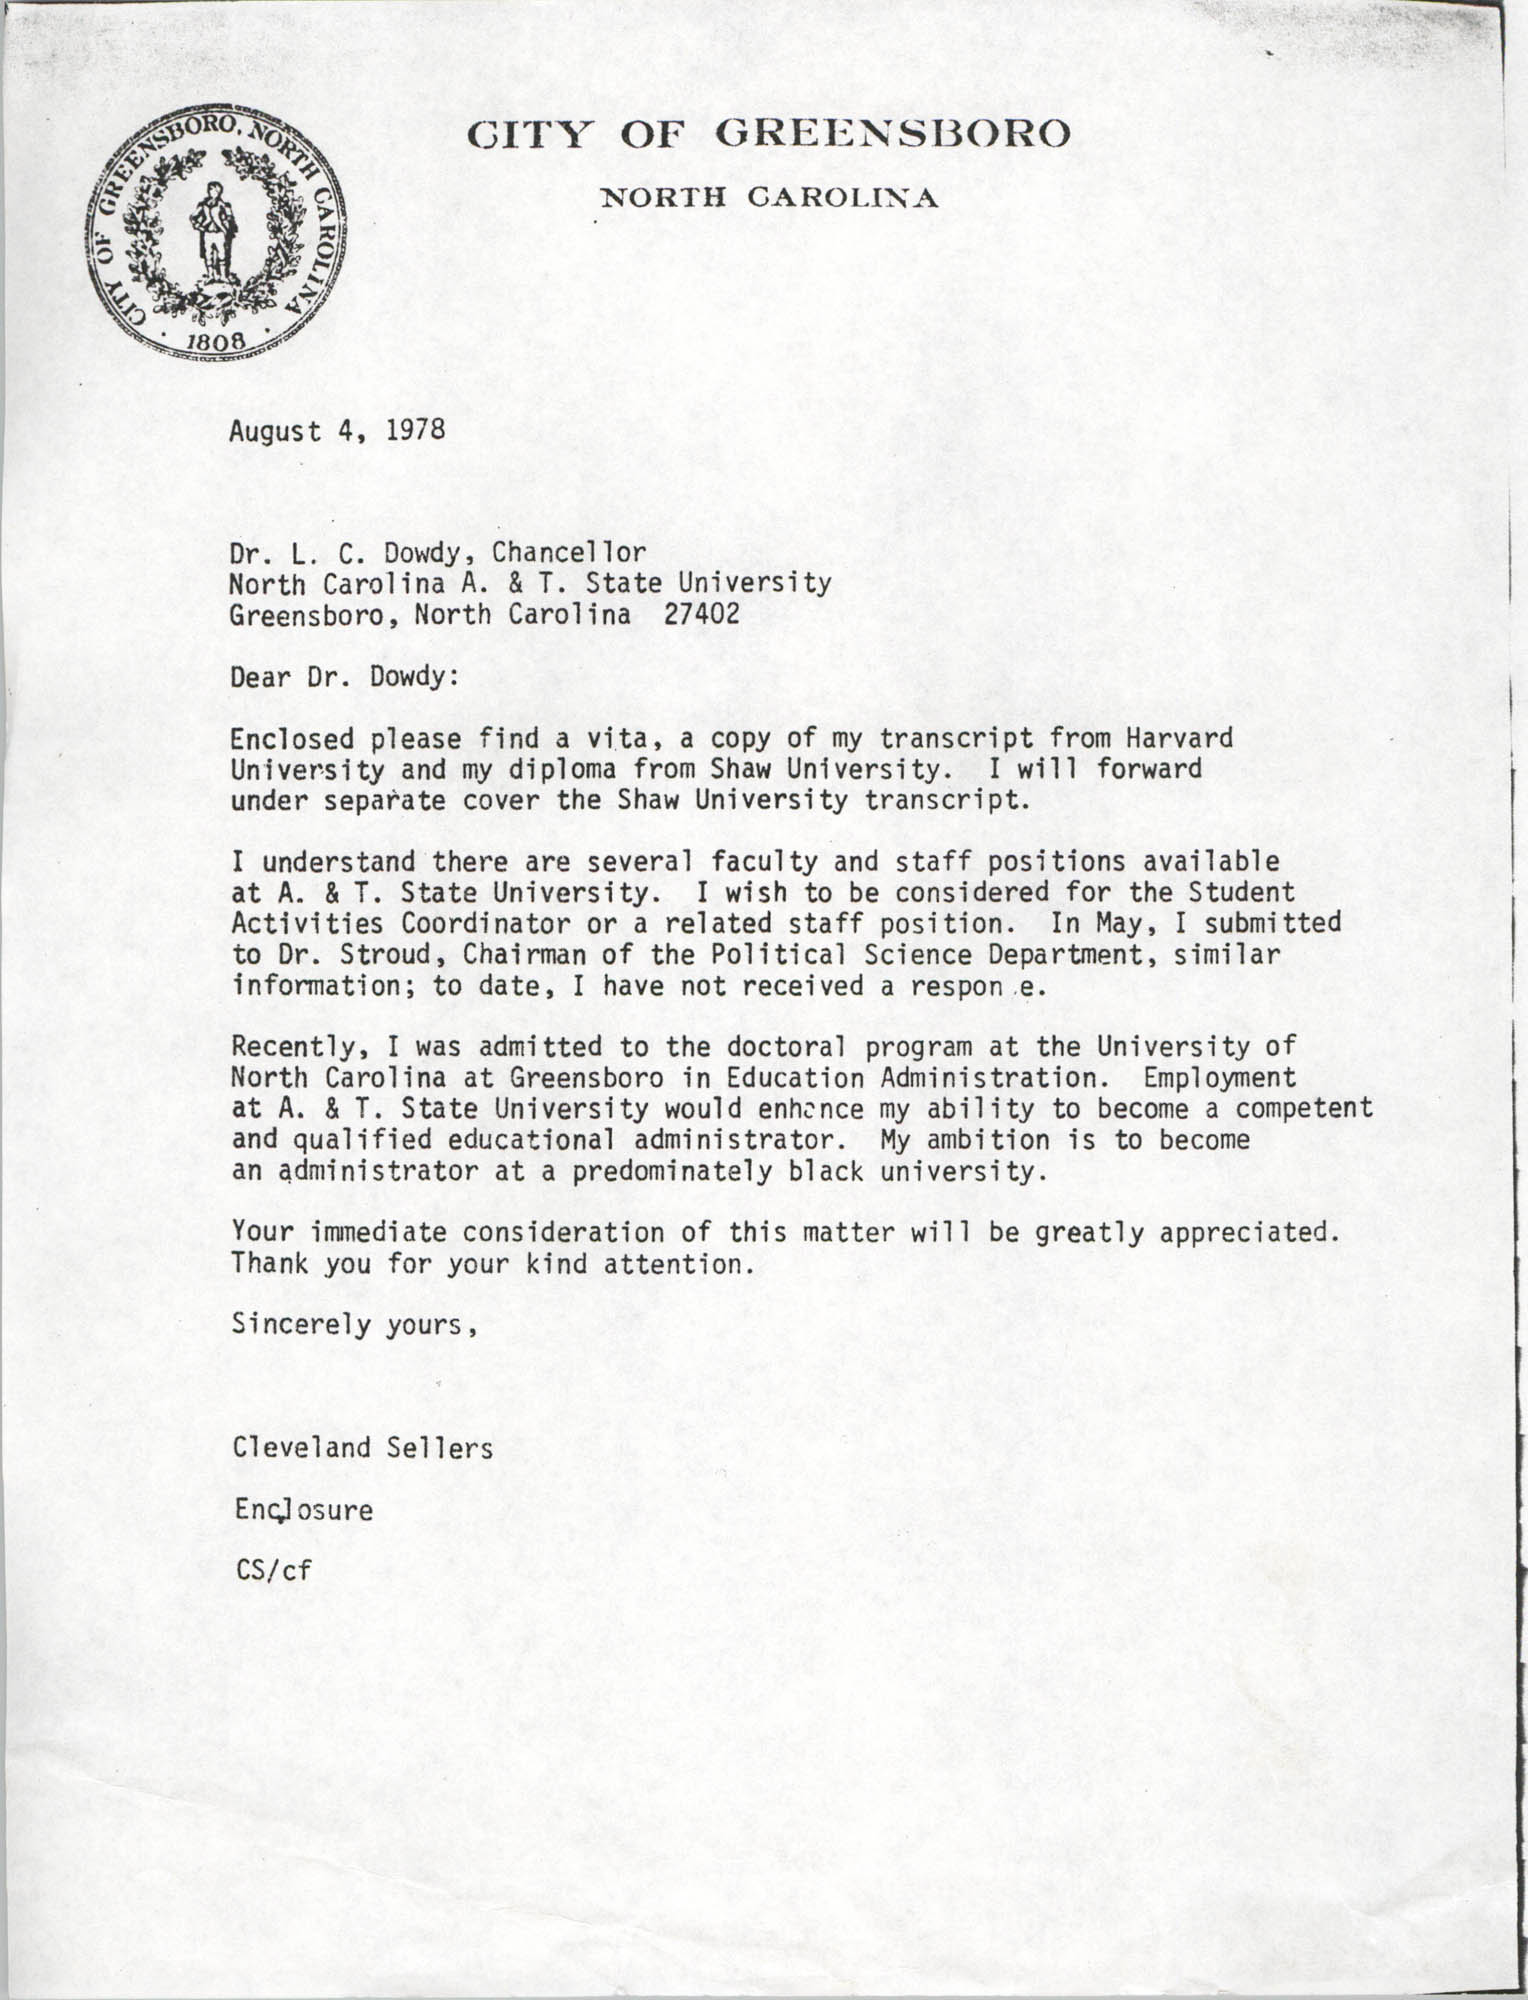 Letter from Cleveland Sellers to L. C. Dowdy, August 4, 1978